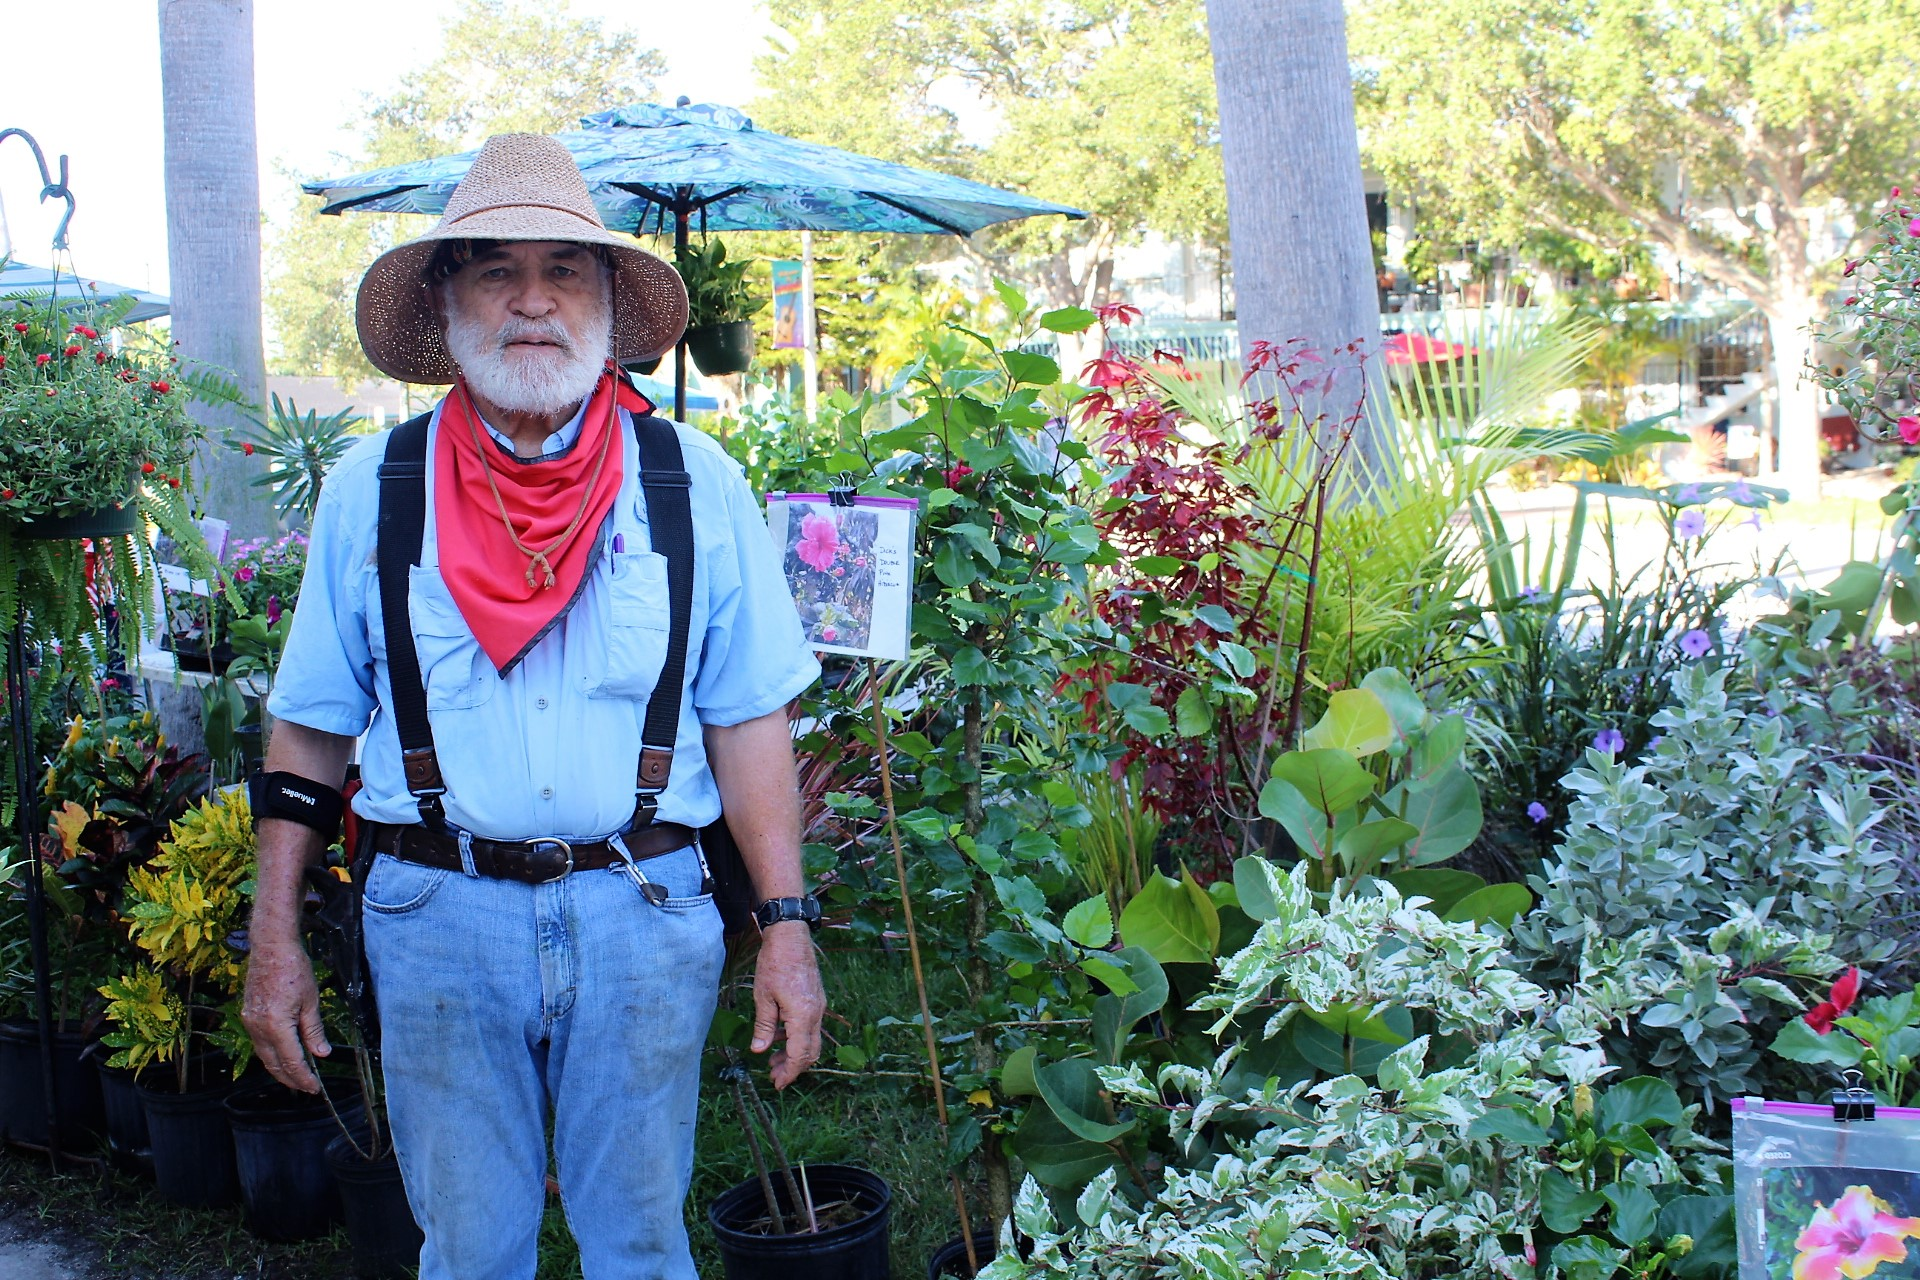 A man in a sun hat and red bandana stands in front of a garden.